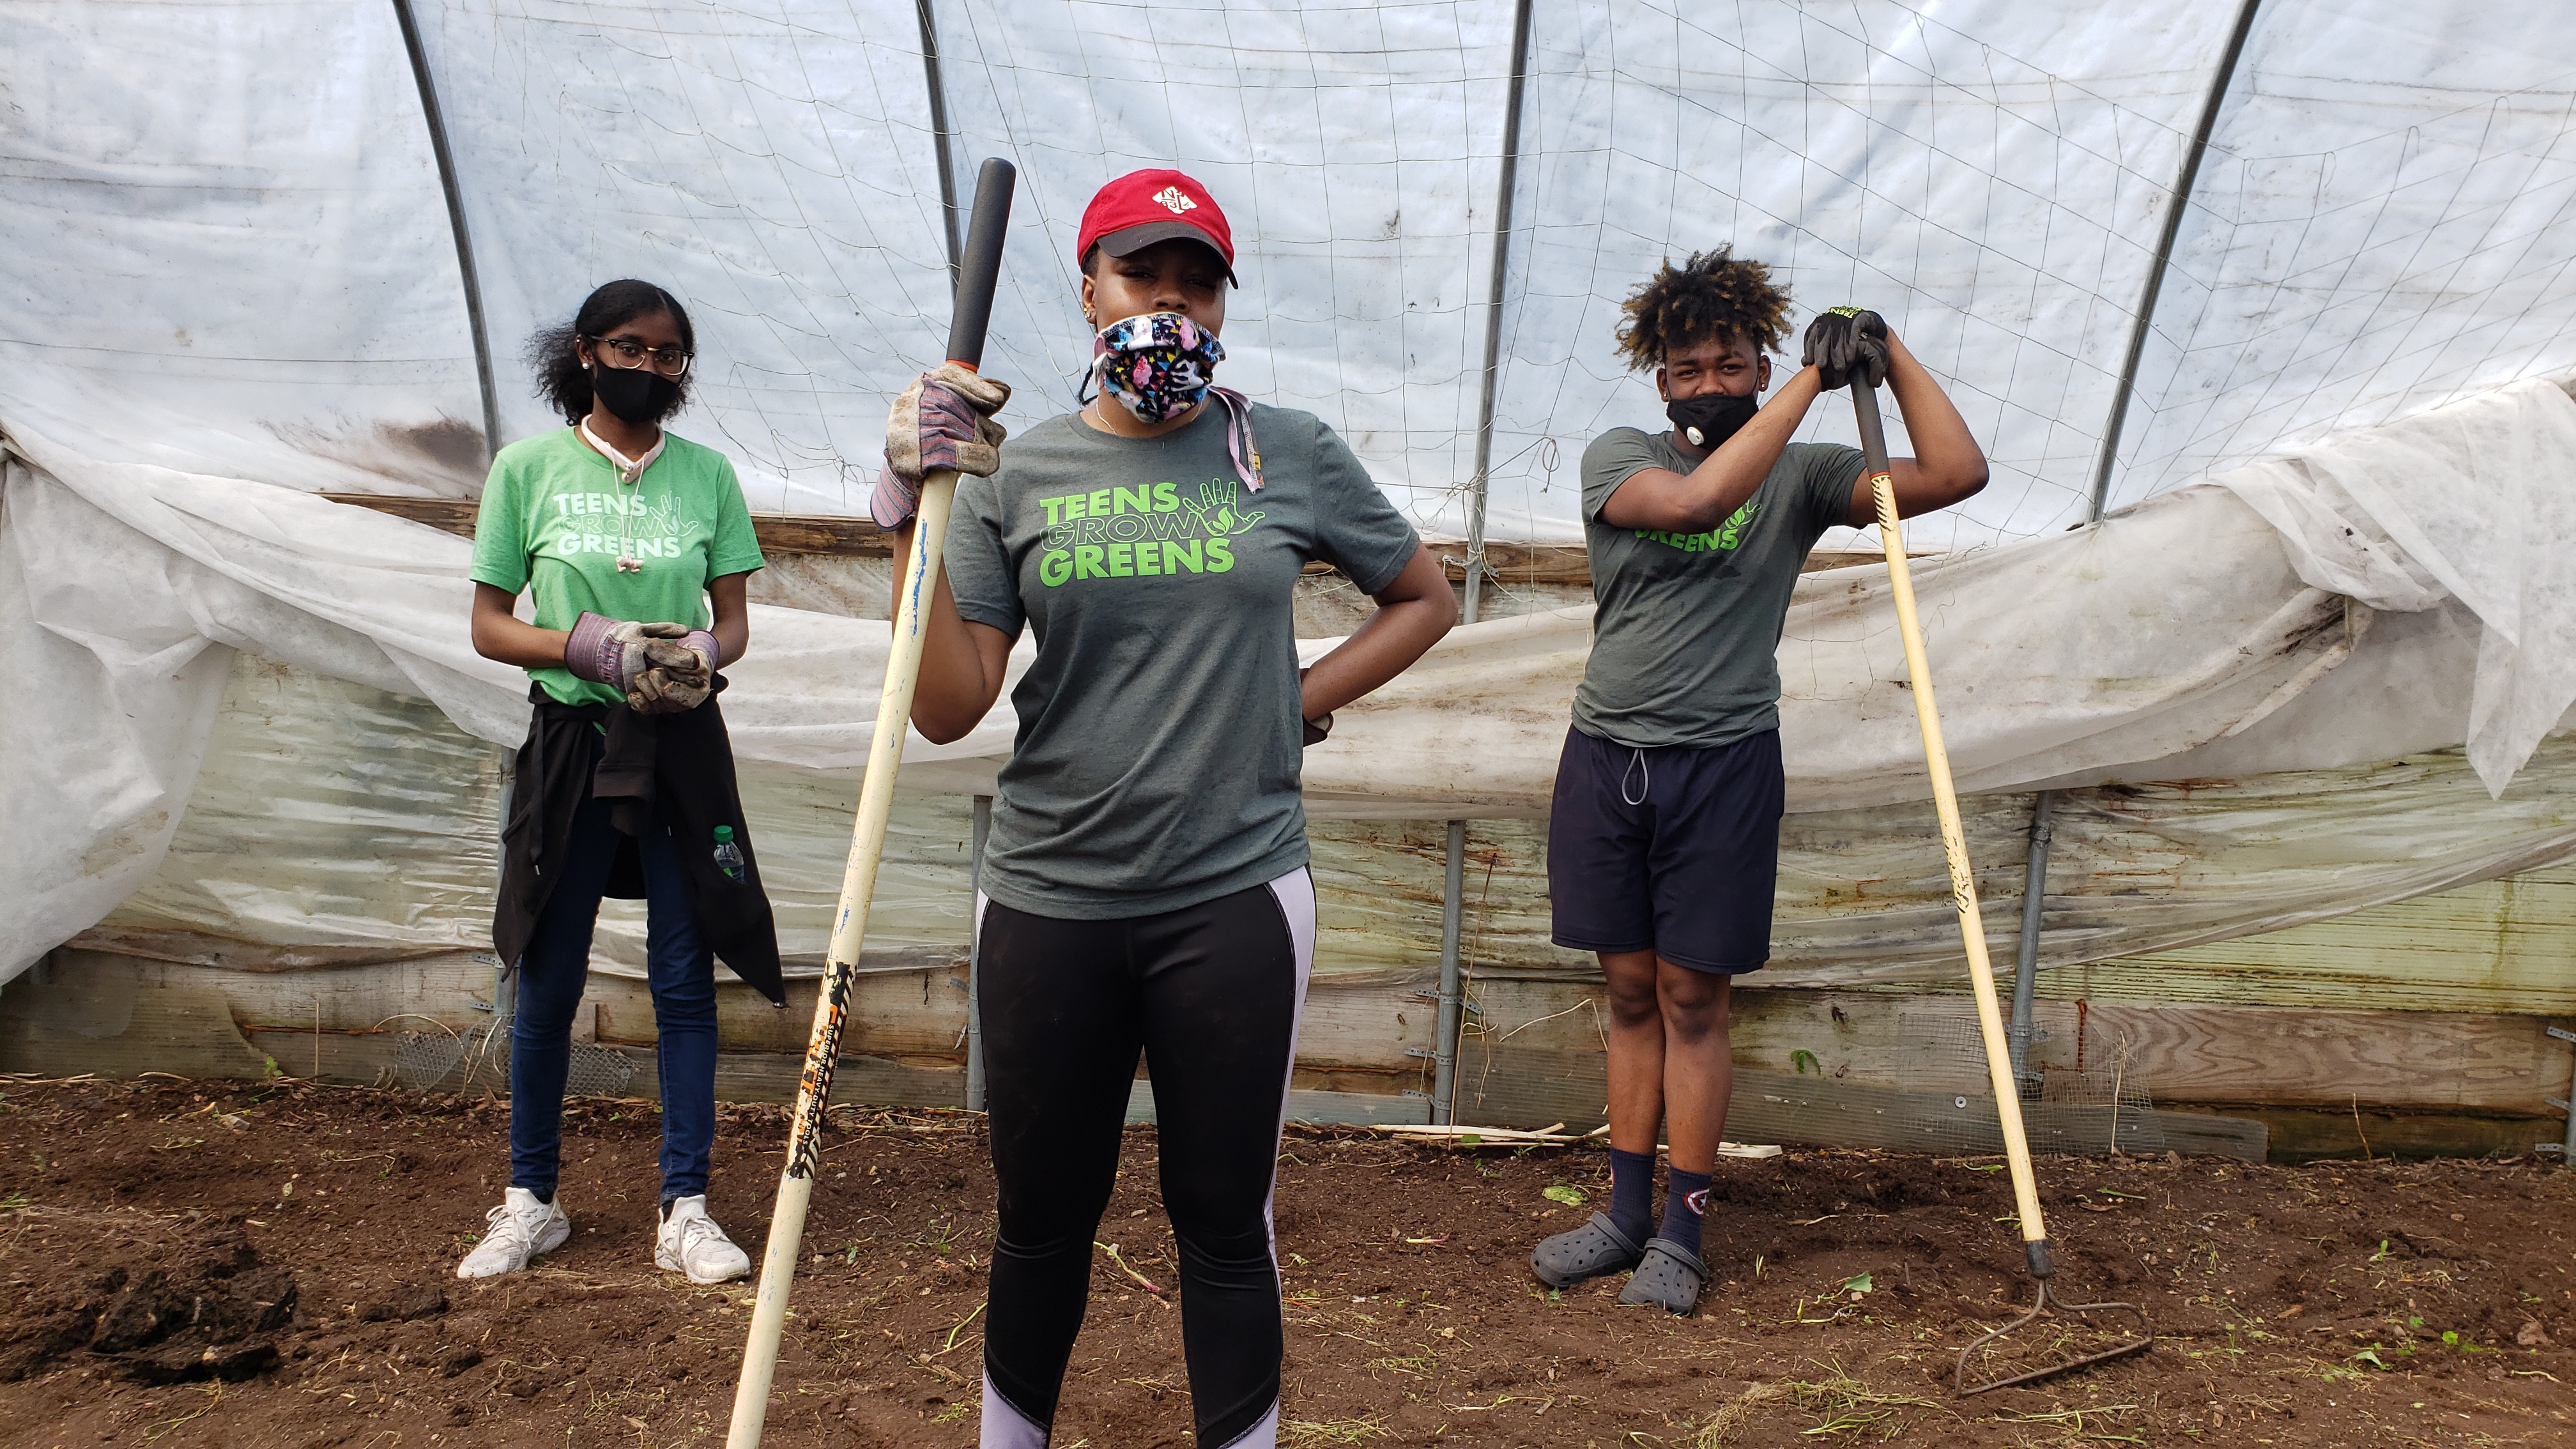 Increasing Food Accessibility & Empowering Youth: Community Changemaker Teens Grow Greens